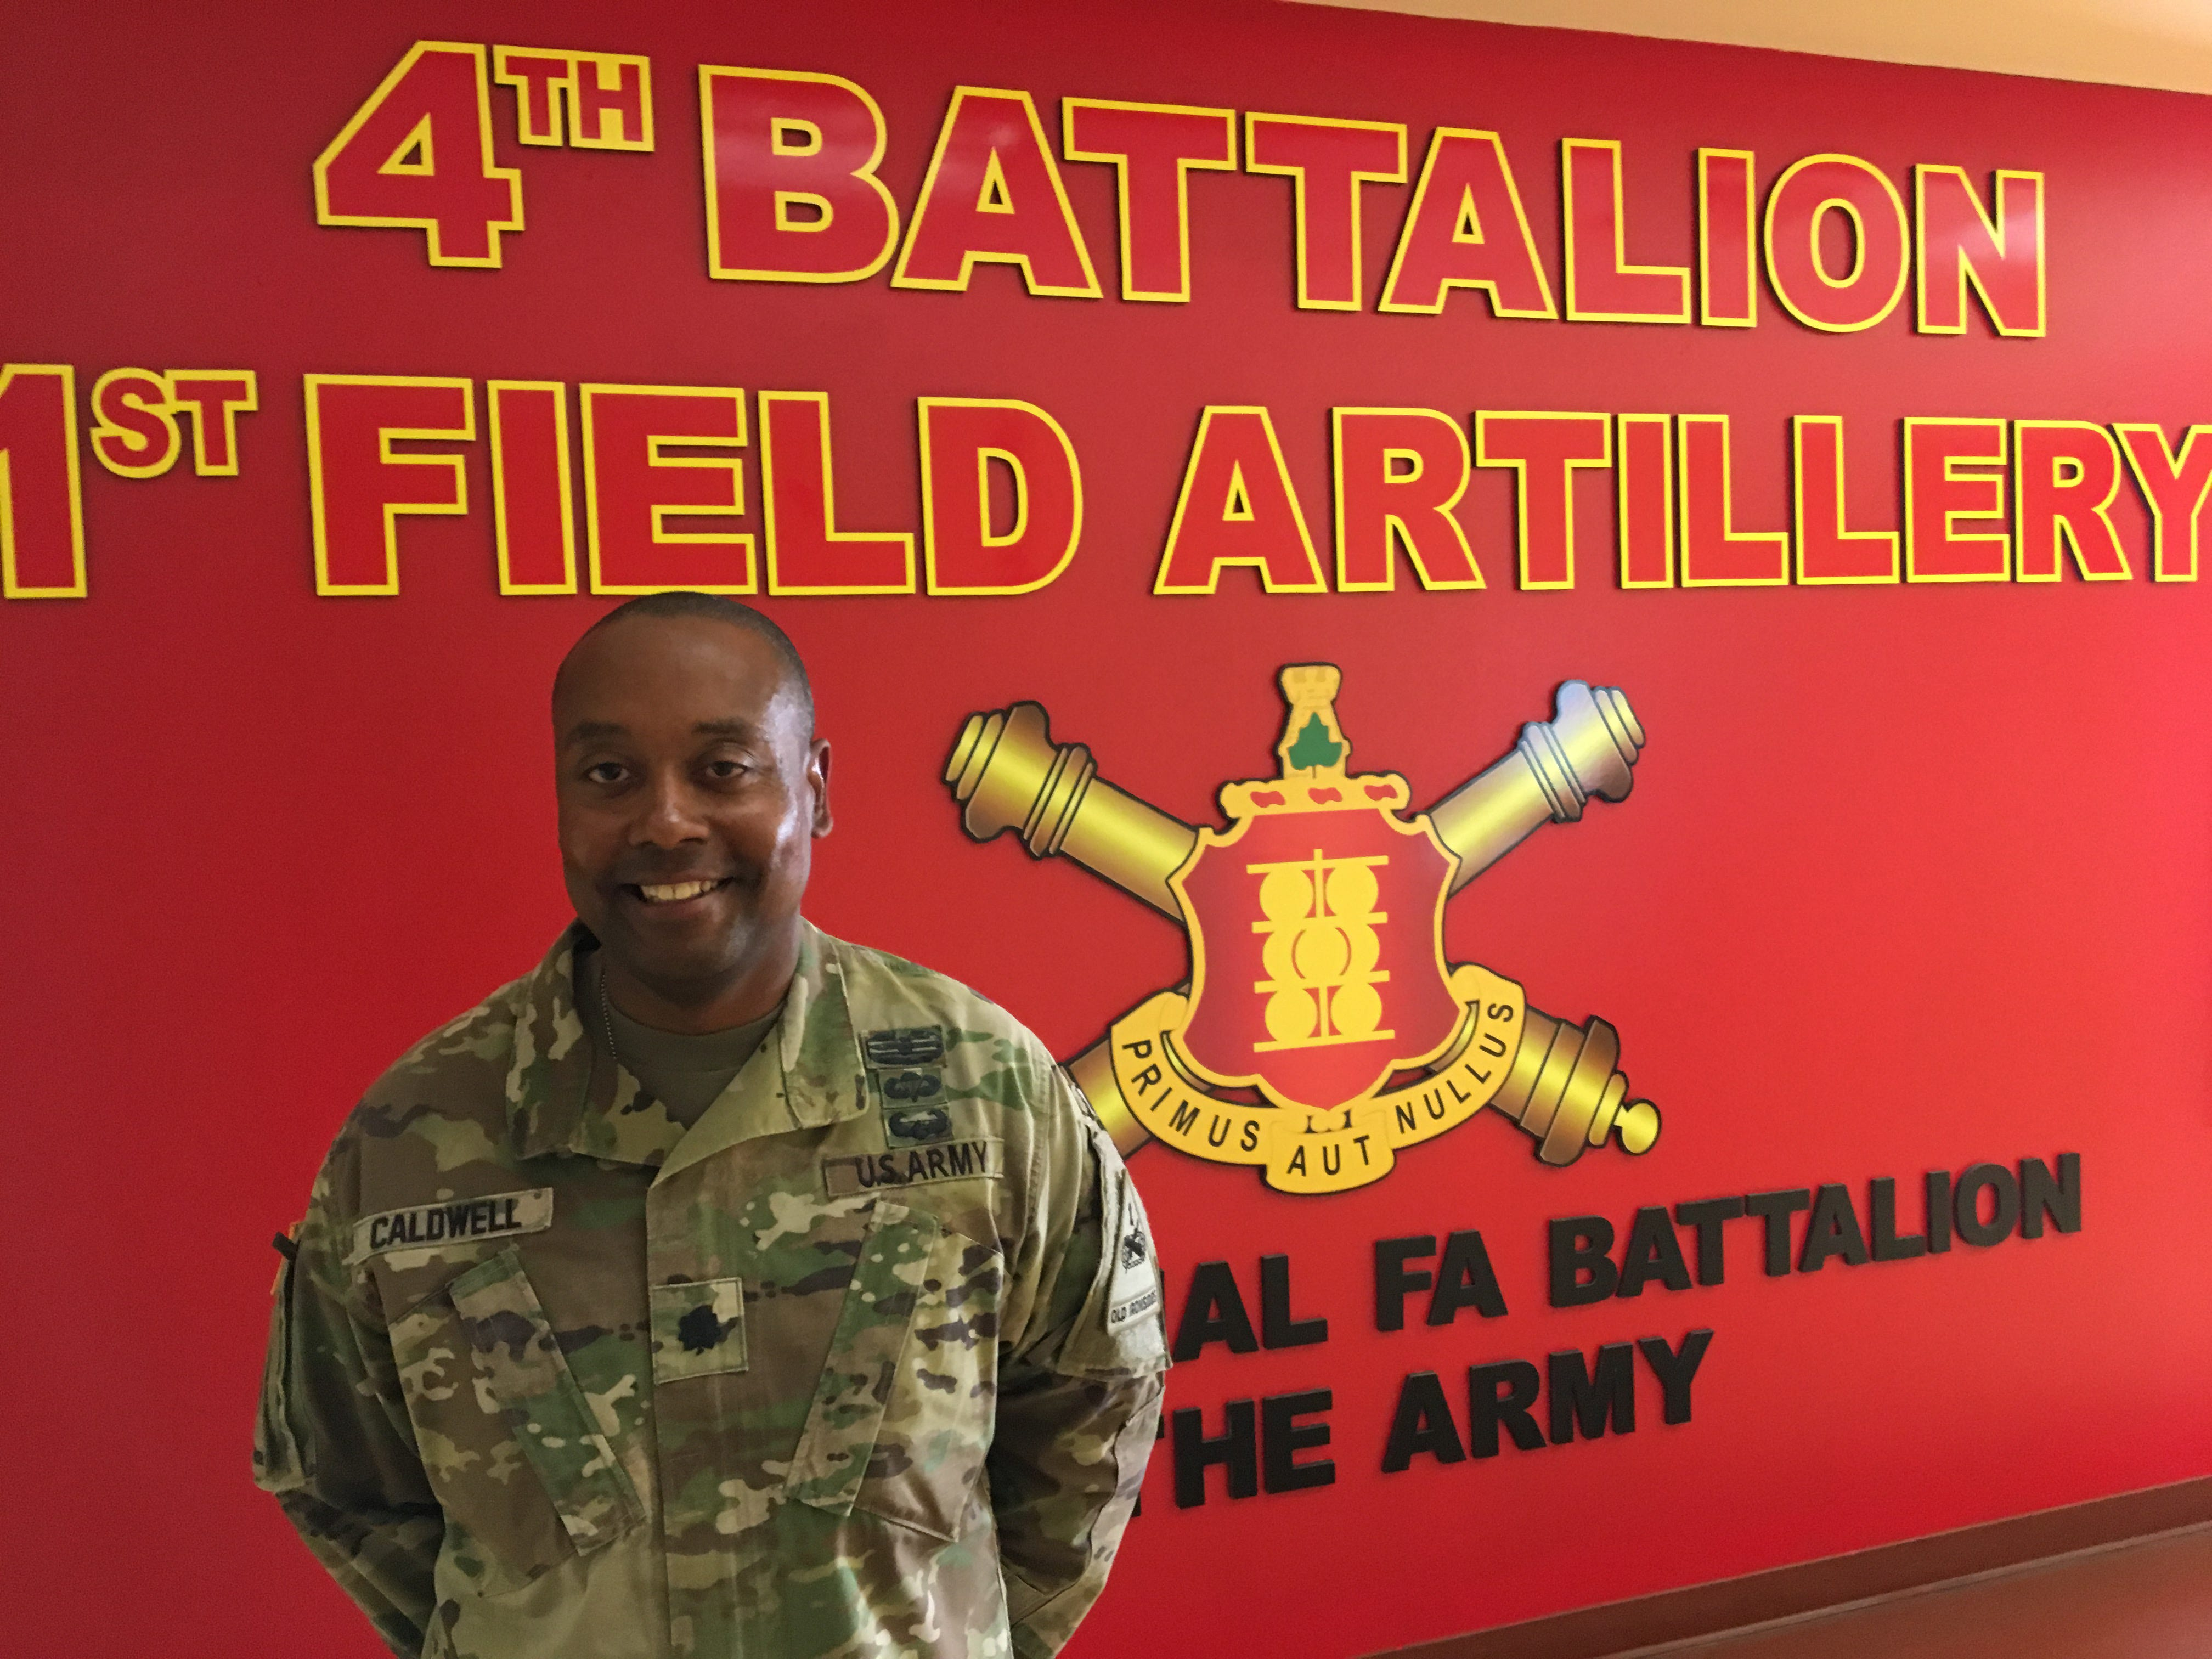 Lt. Col. Tom Caldwell's tenure with Fort Bliss' Defender Battalion included deployment   El Paso Times